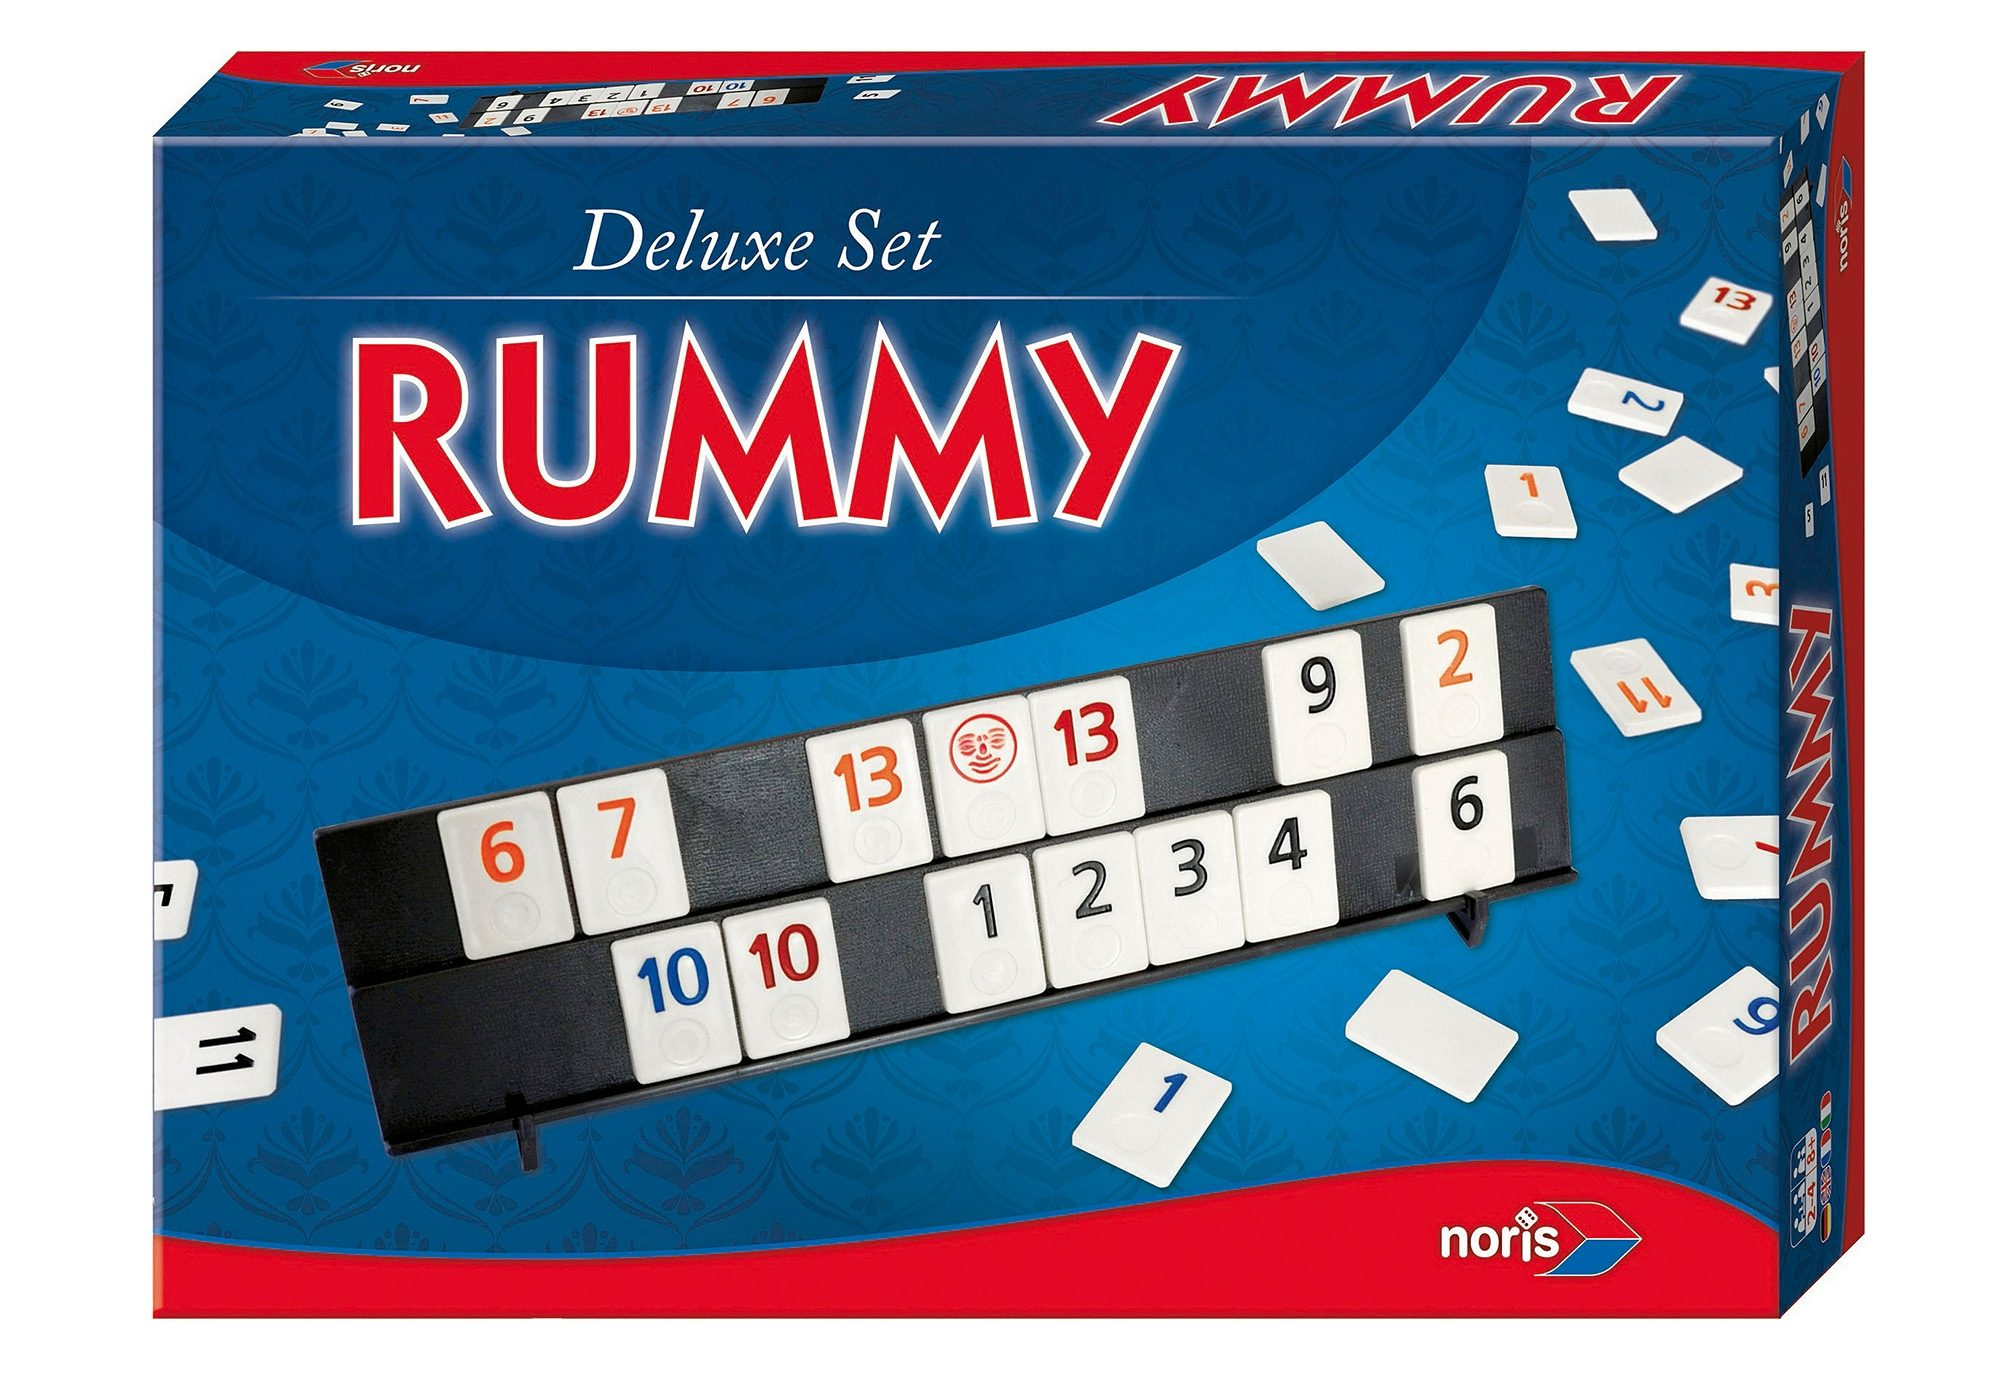 Deluxe-Set Rummy, Noris